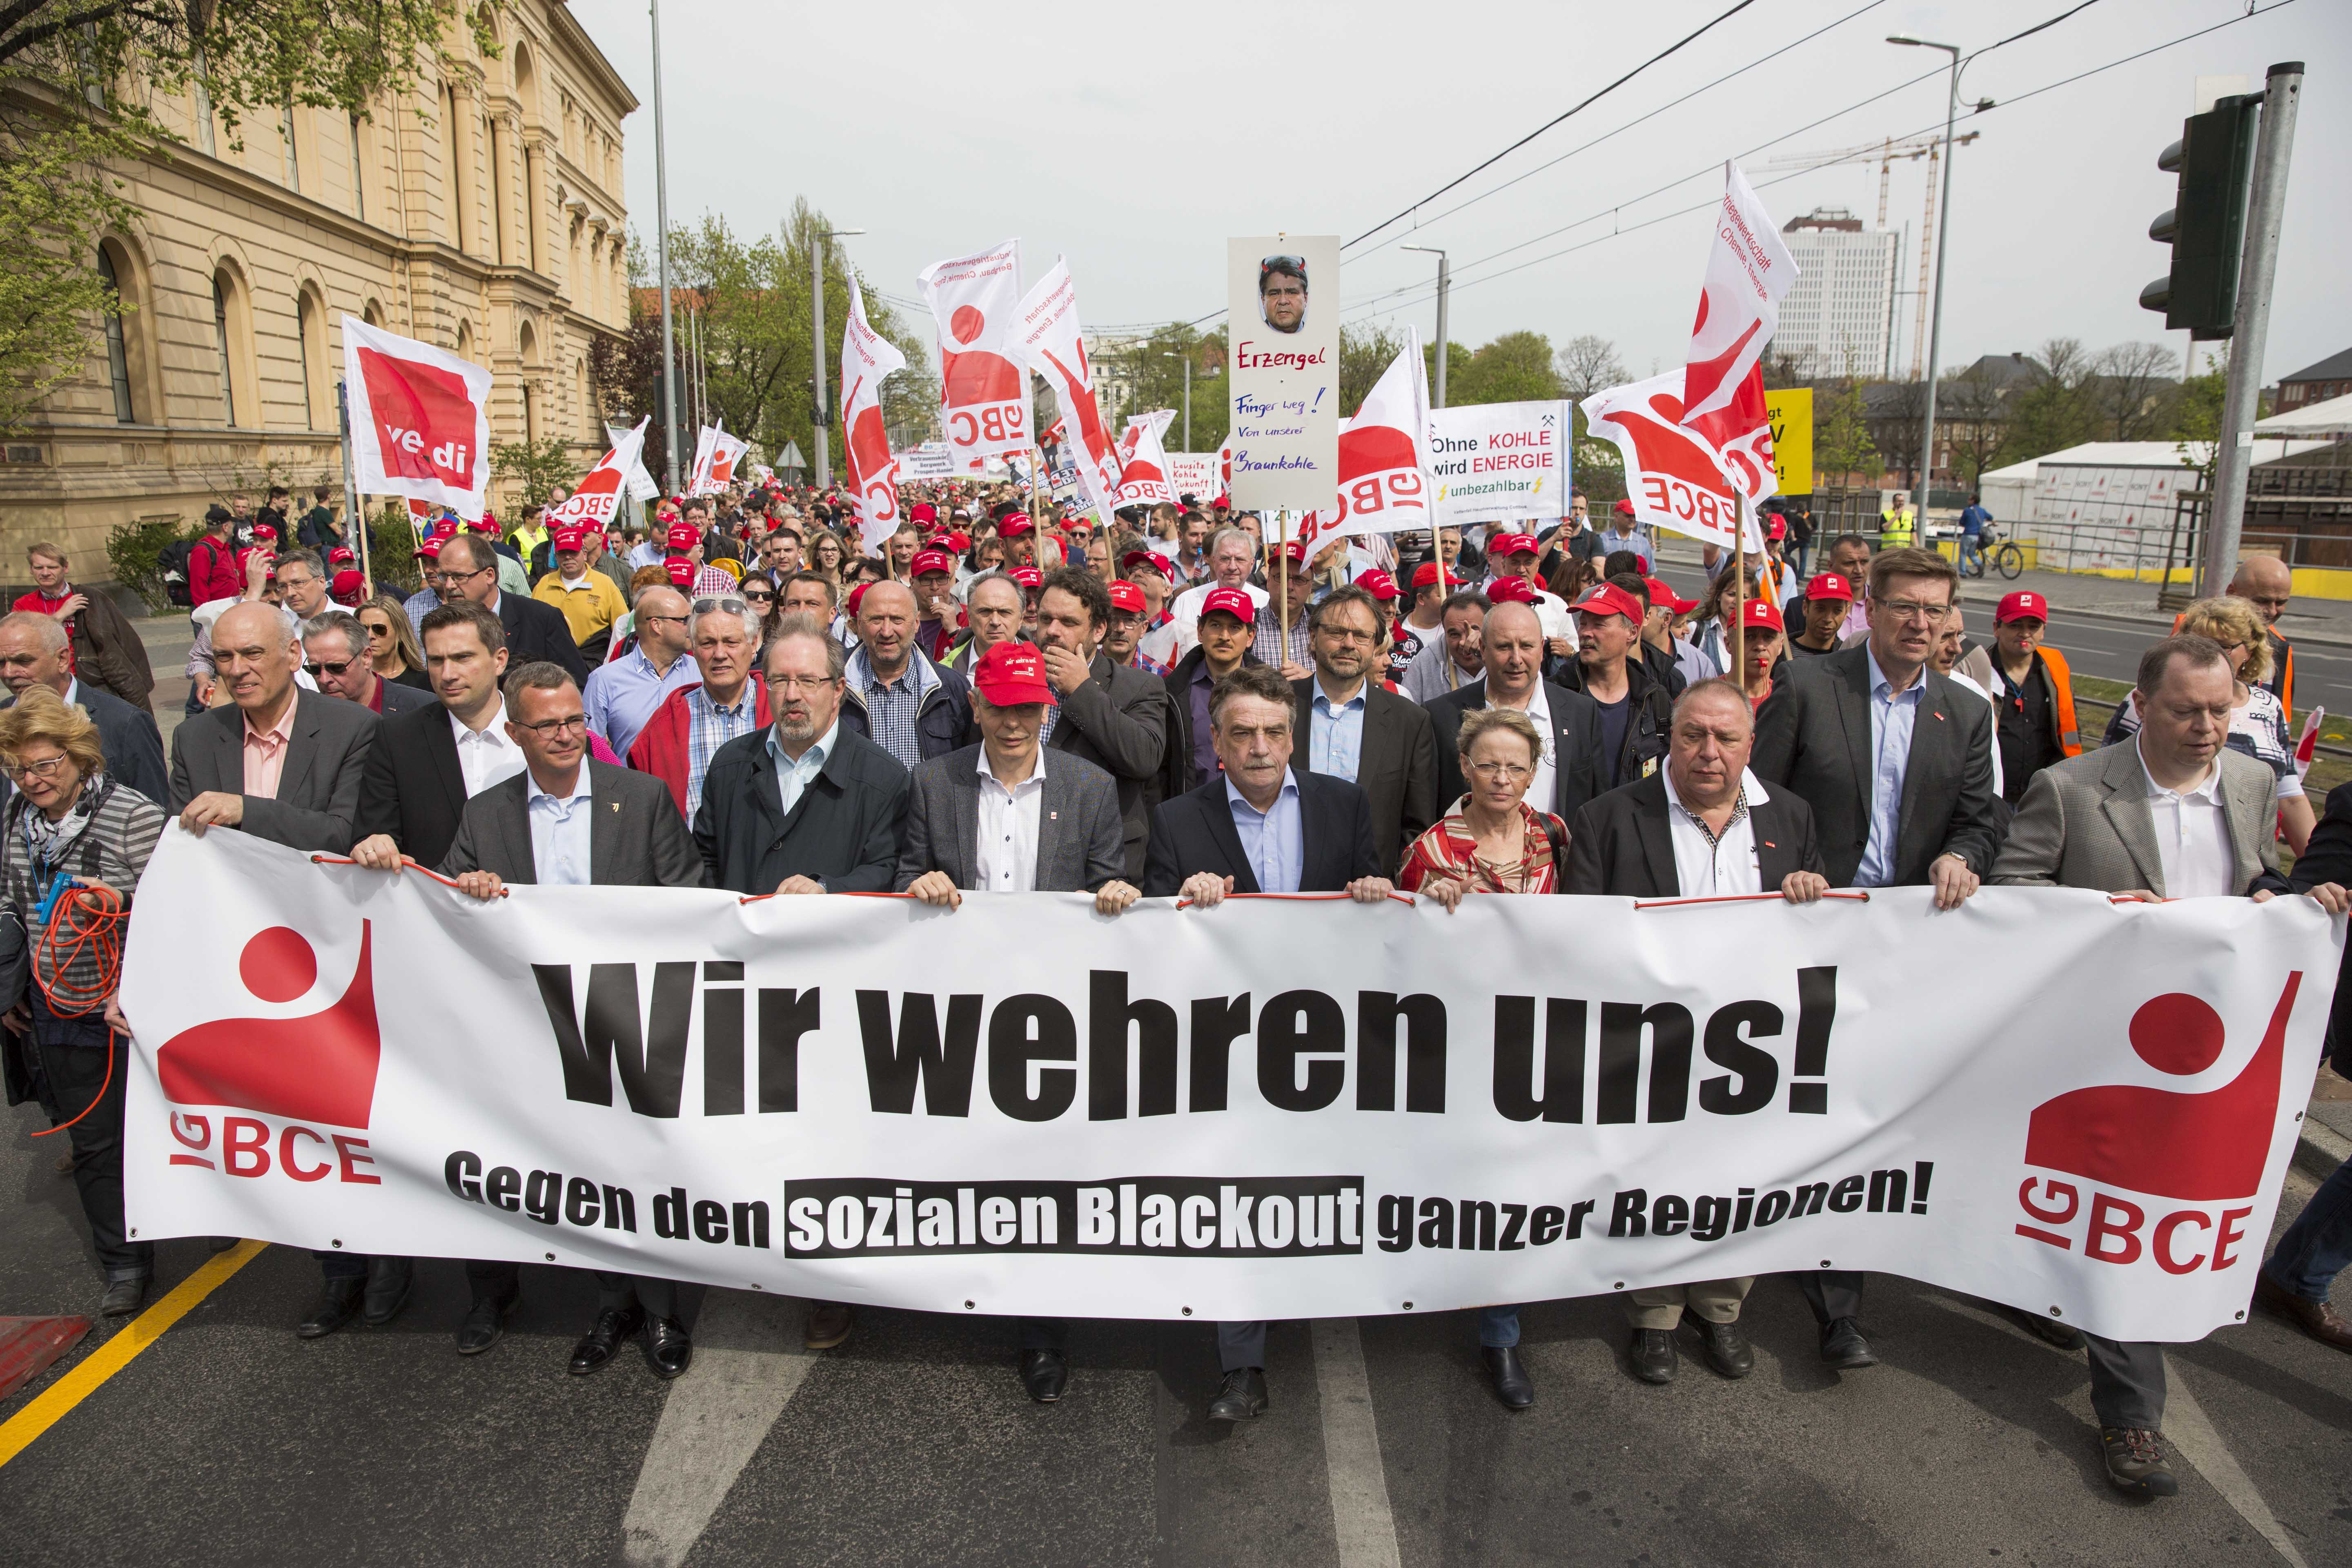 Coal miners and energy workers took to the streets of Berlin to protest a planned tax on emissions from lignite coal plants, April 25, 2015.